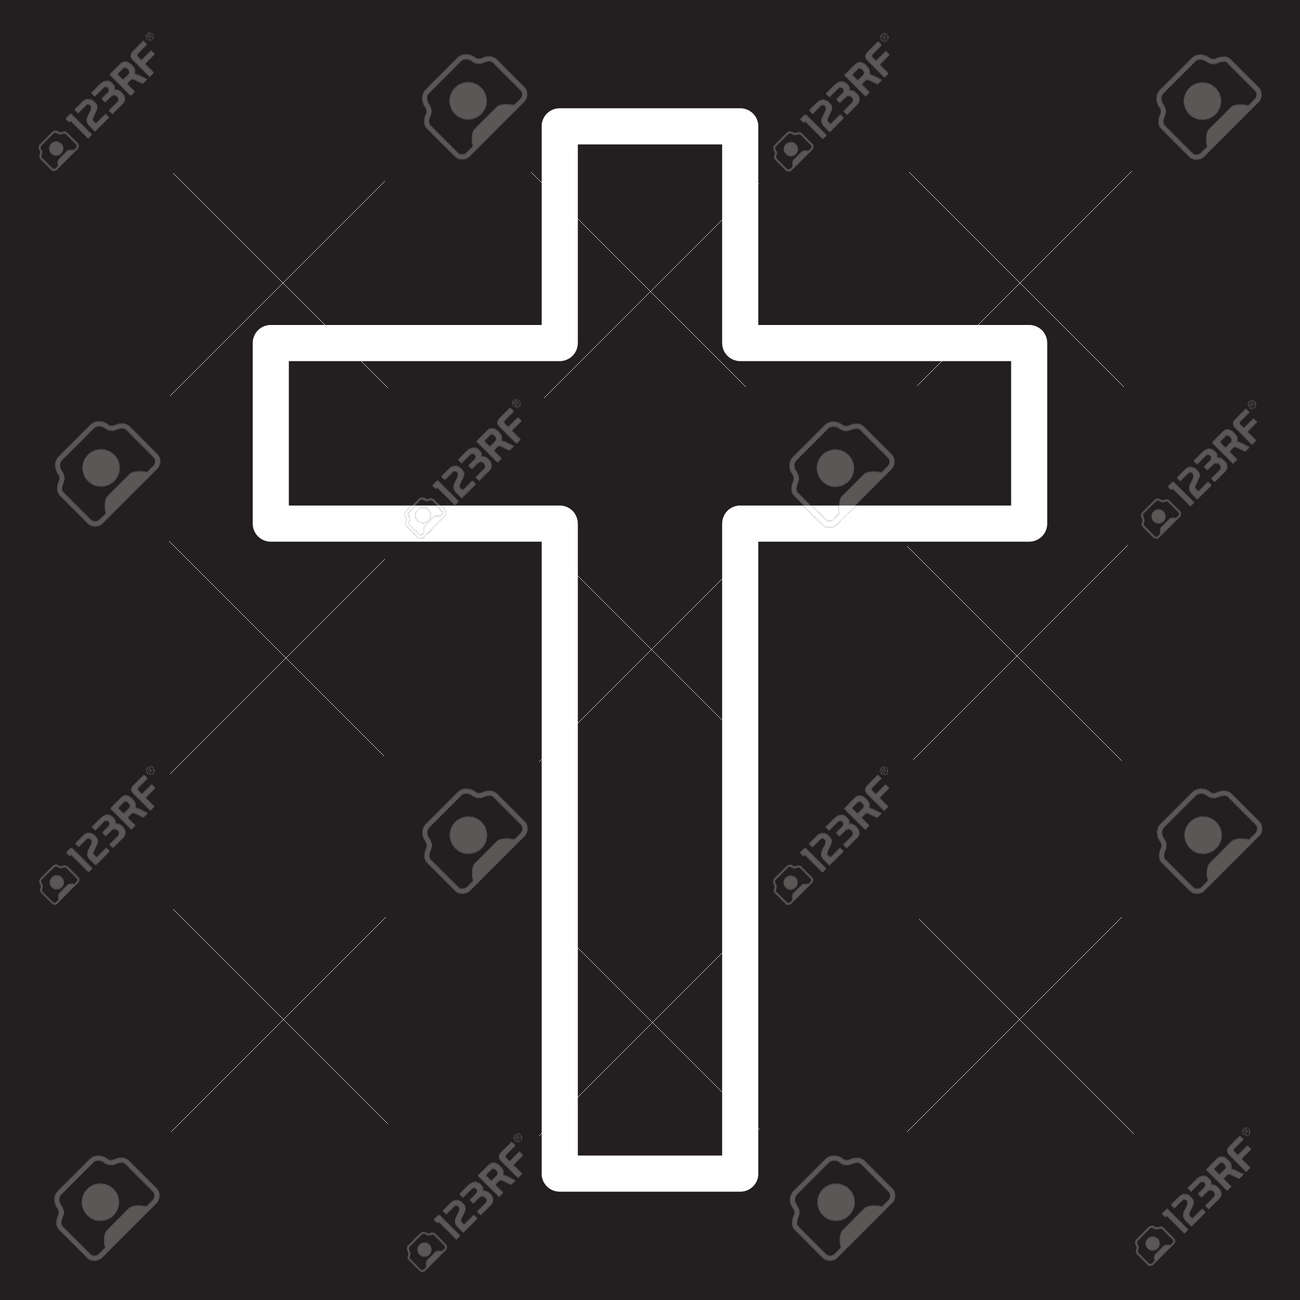 Christian Cross Line Icon Christianity White Outline Sign Vector Royalty Free Cliparts Vectors And Stock Illustration Image 78500010 Download 33,000+ royalty free cross outline vector images. christian cross line icon christianity white outline sign vector